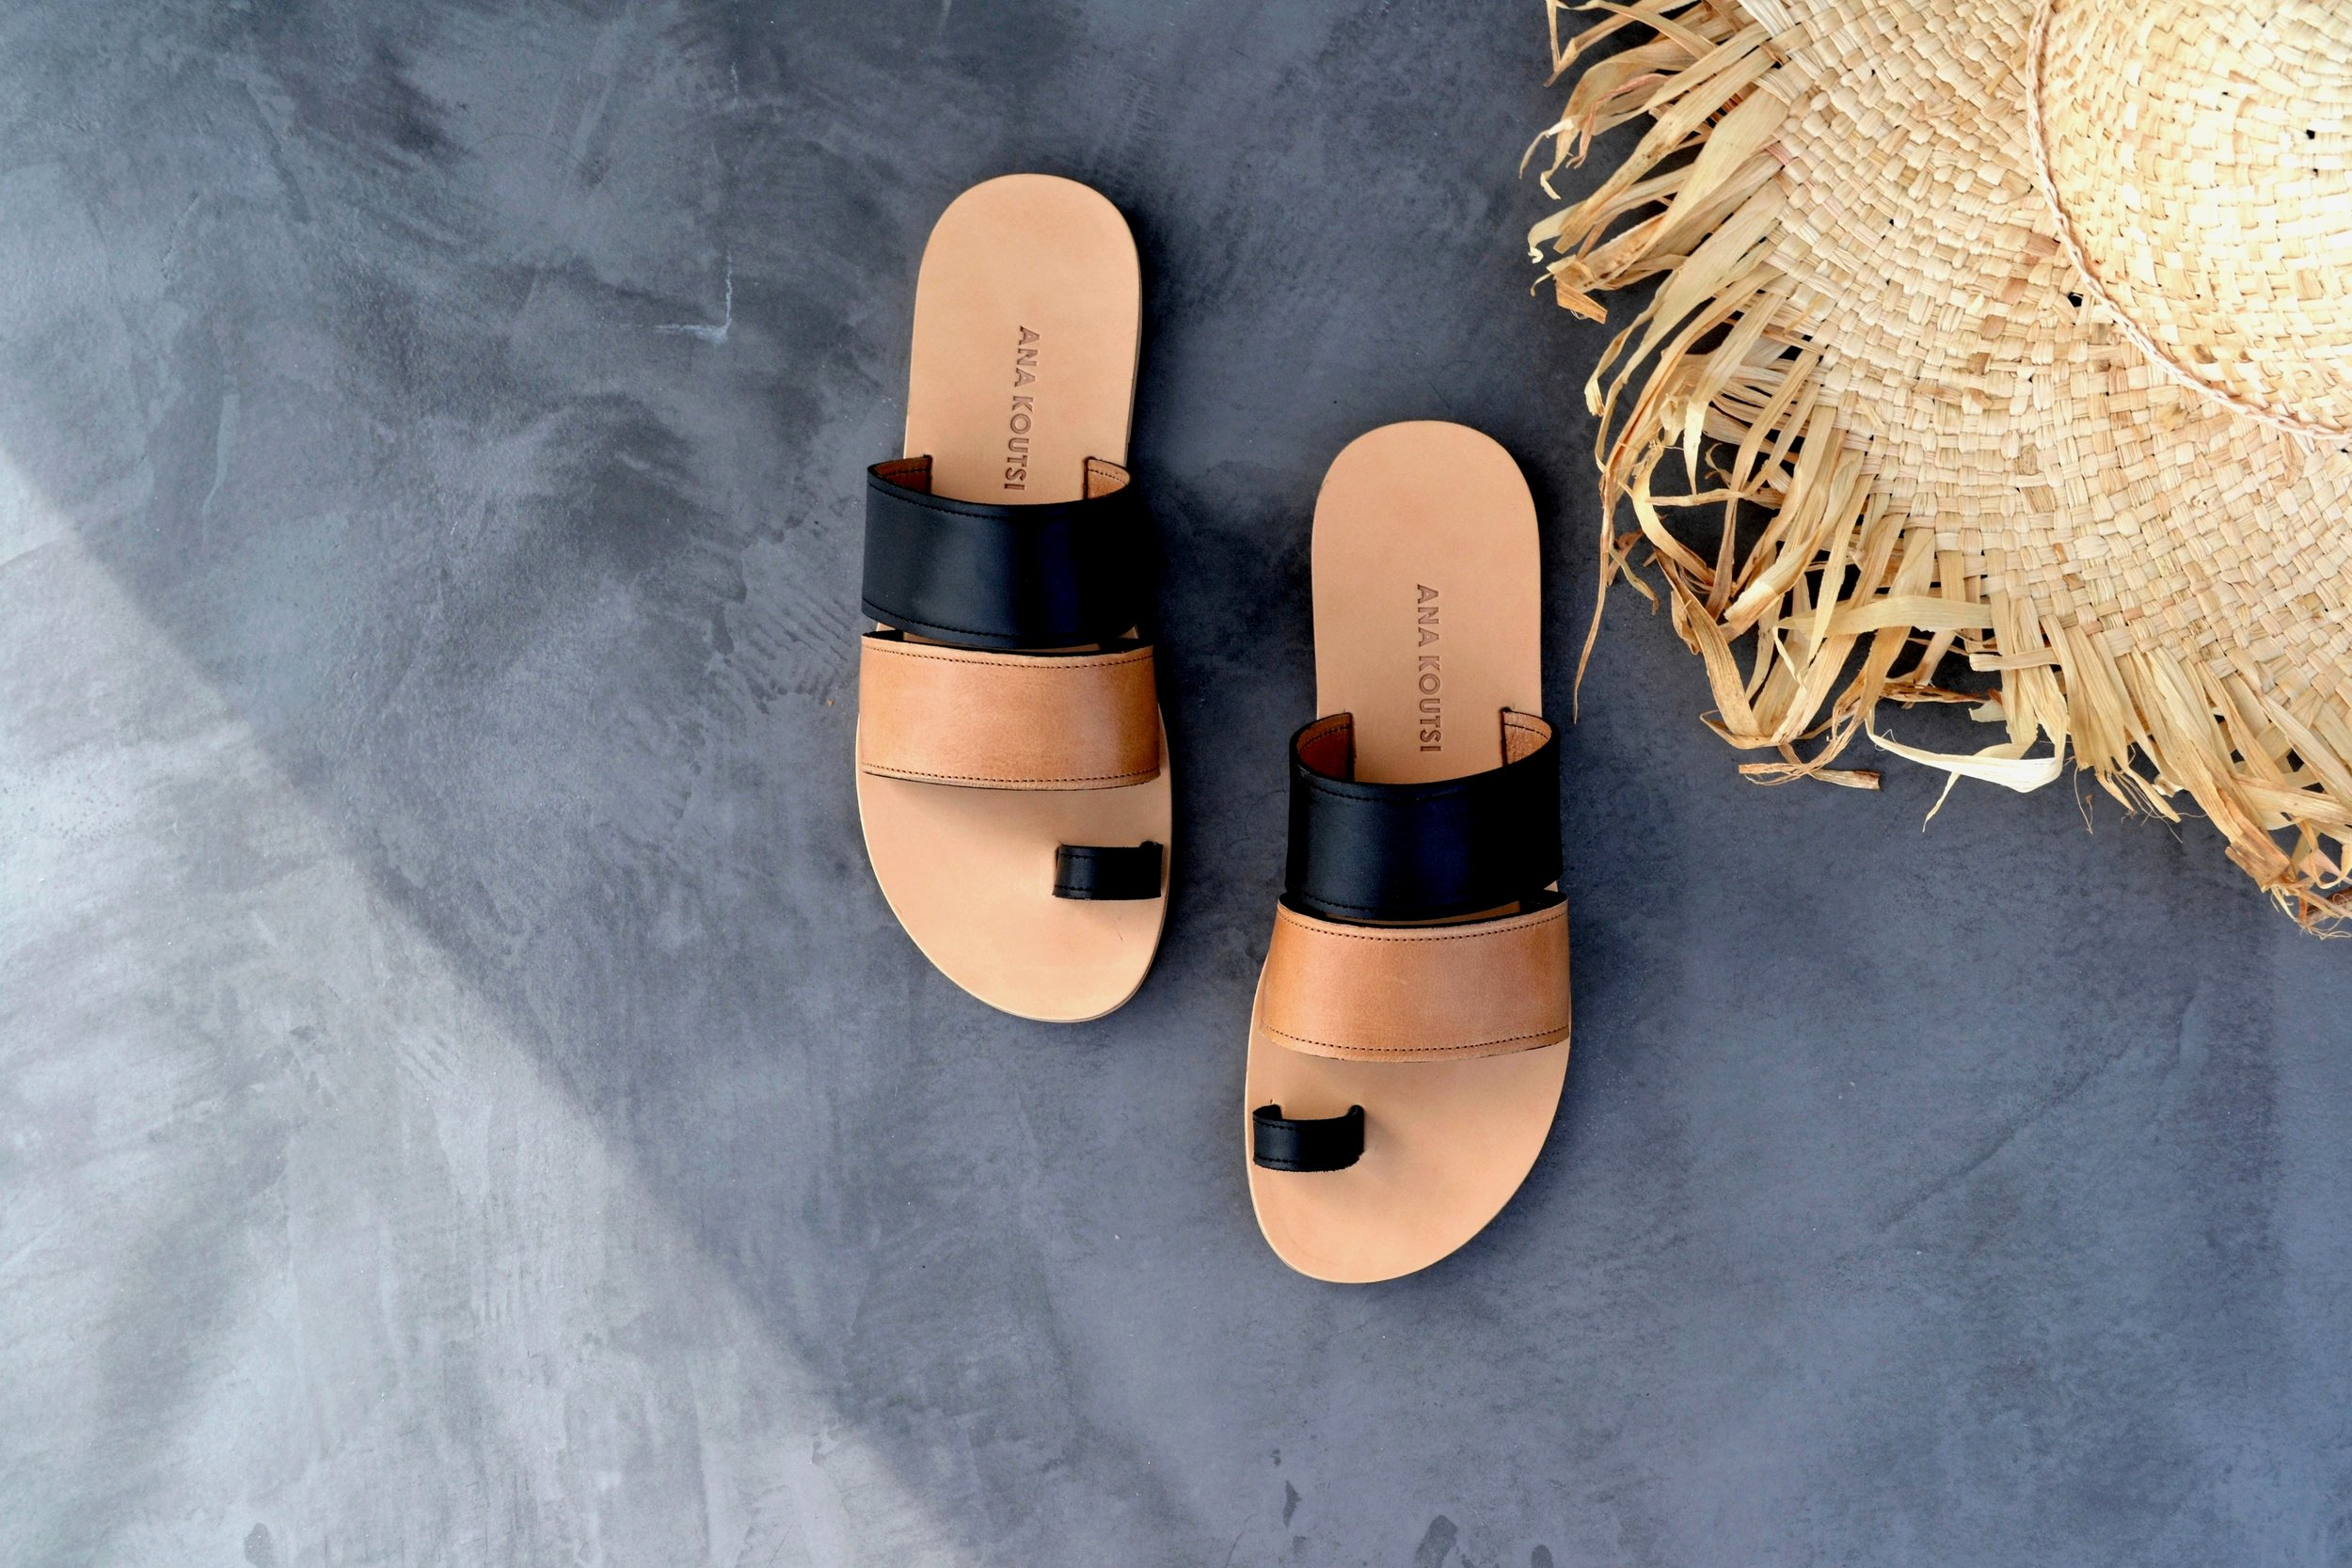 - Lovely boho sandals! Ana was very kind when I had some questions. Excellent customer service, highly recommend! Thank you so much! - Katerina Log